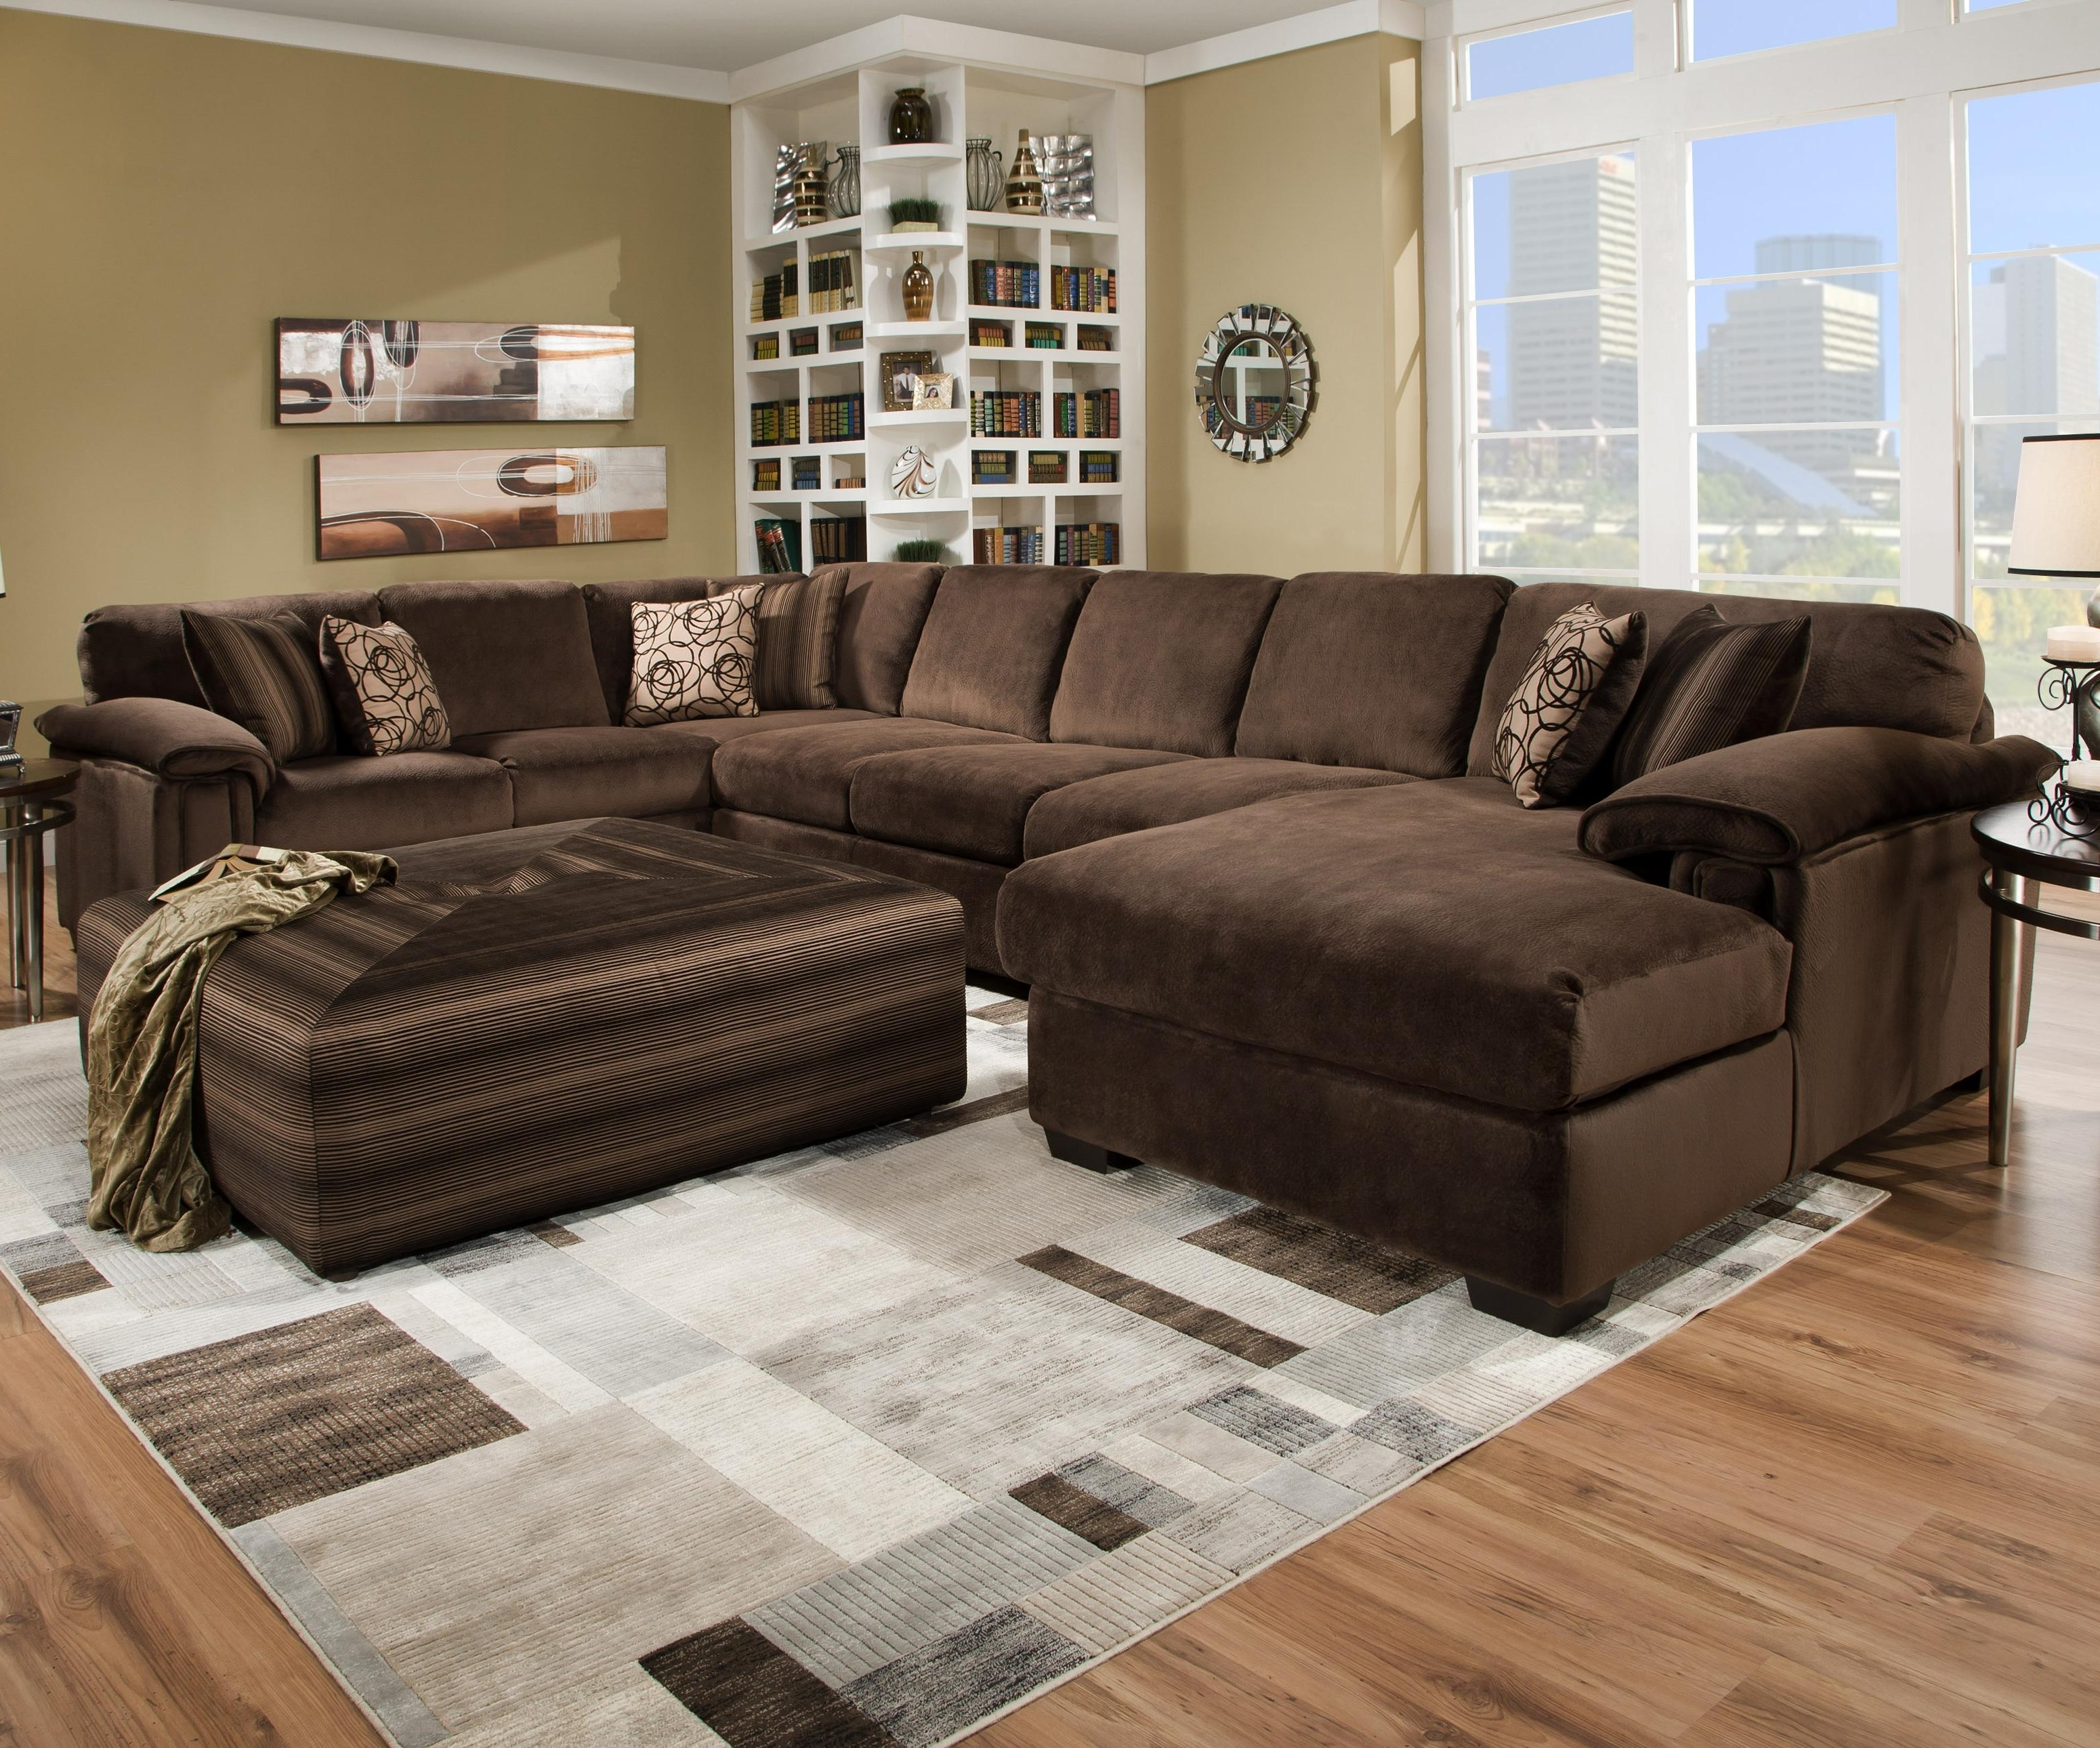 Preferred Oversized Sofa Chairs In Livingroom : Oversized Sofa Slipcovers Living Room Furniture Big (View 10 of 20)